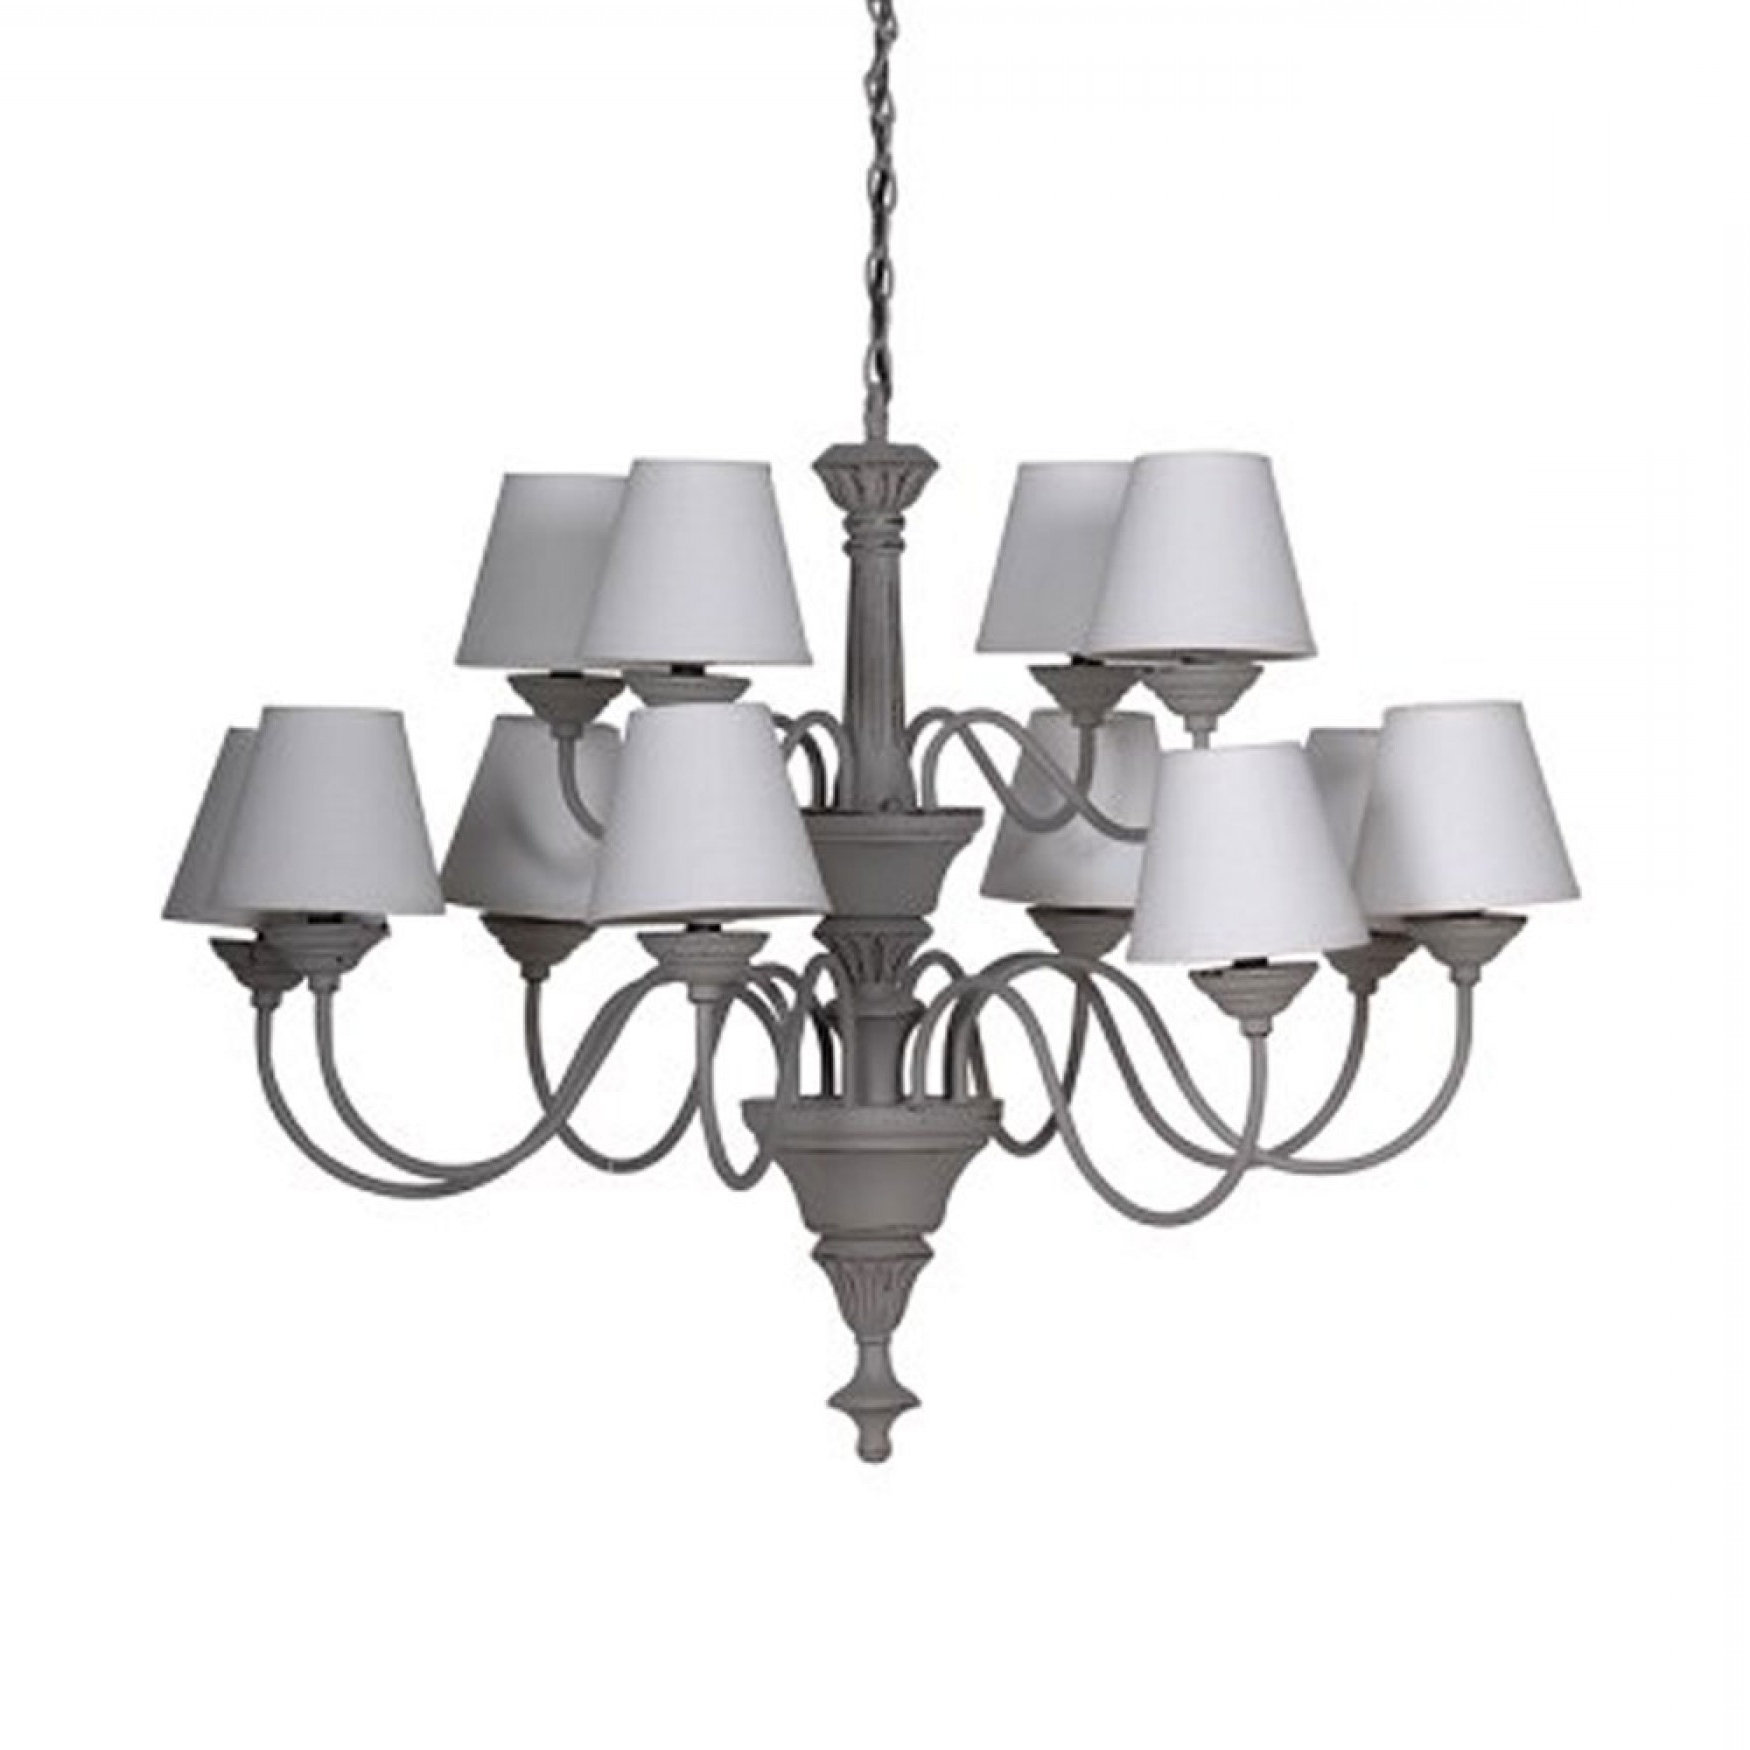 Best And Newest Grey Chandelier With 12 Cream Shades Pertaining To Grey Chandeliers (View 1 of 15)